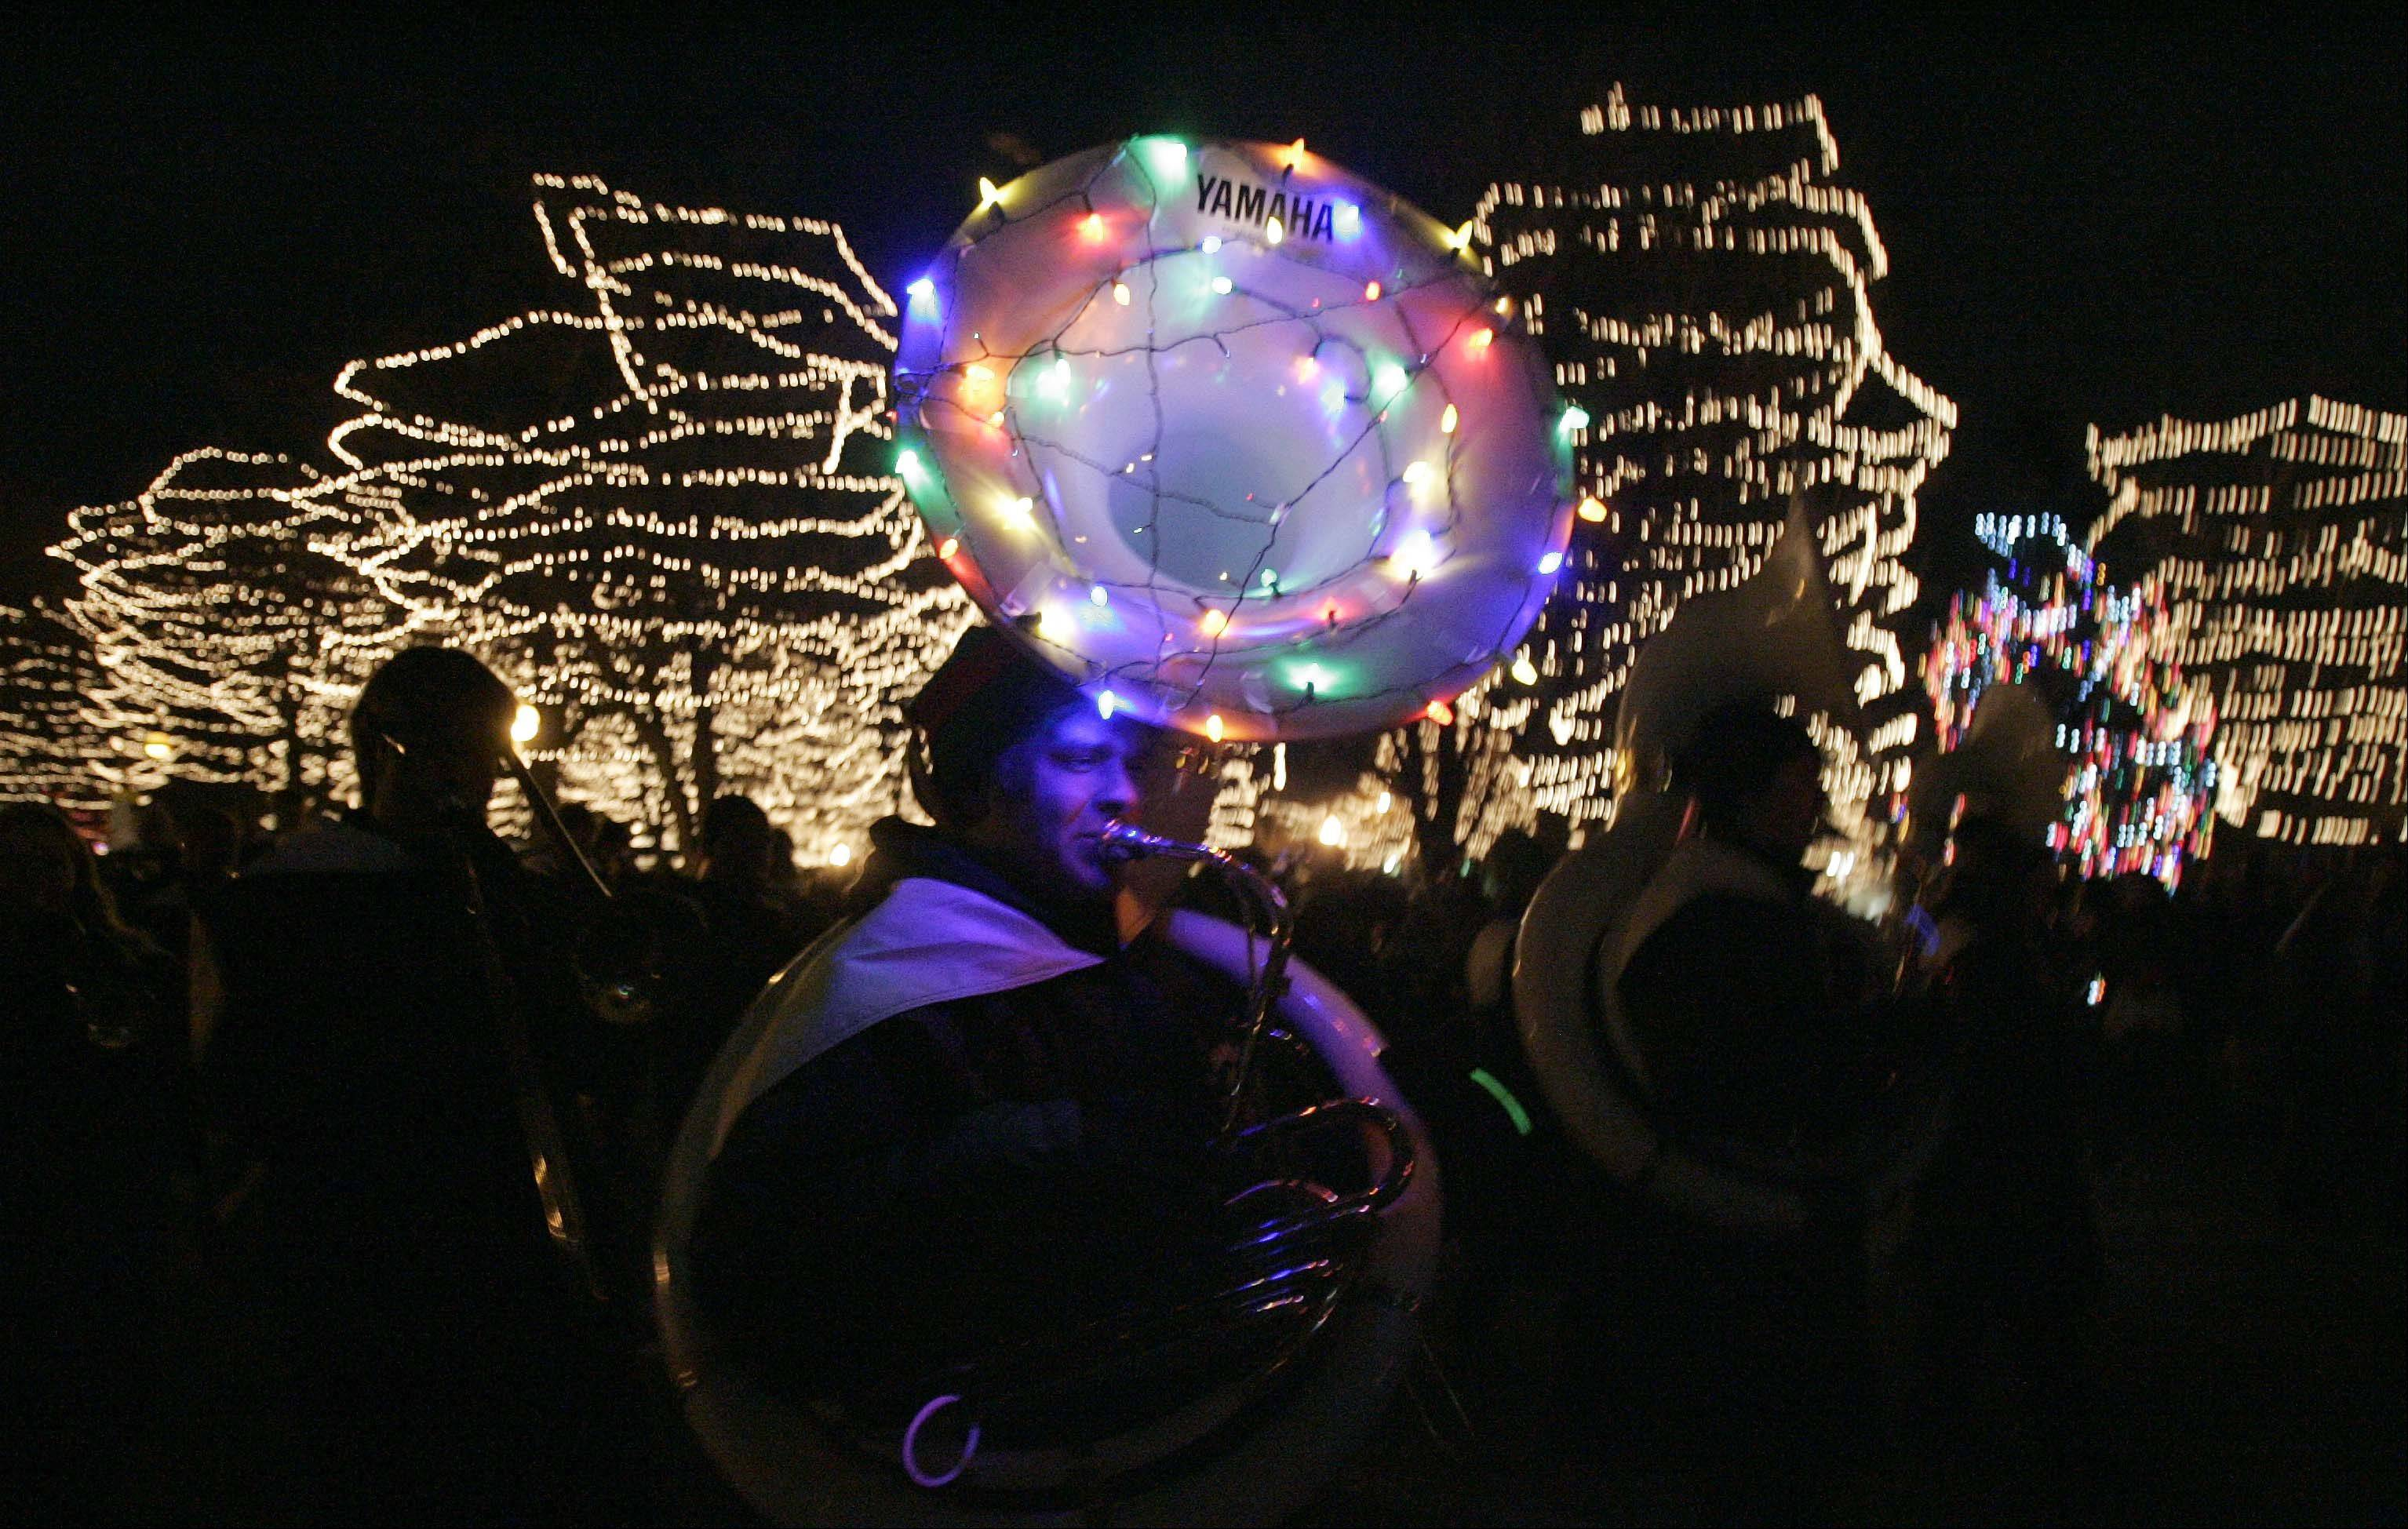 Jack Lindberg of the St. Charles East High School marching band makes his way past Lincoln Park during the Holiday Homecoming and Electric Christmas Parade on Main Street in St. Charles November 24, 2012.